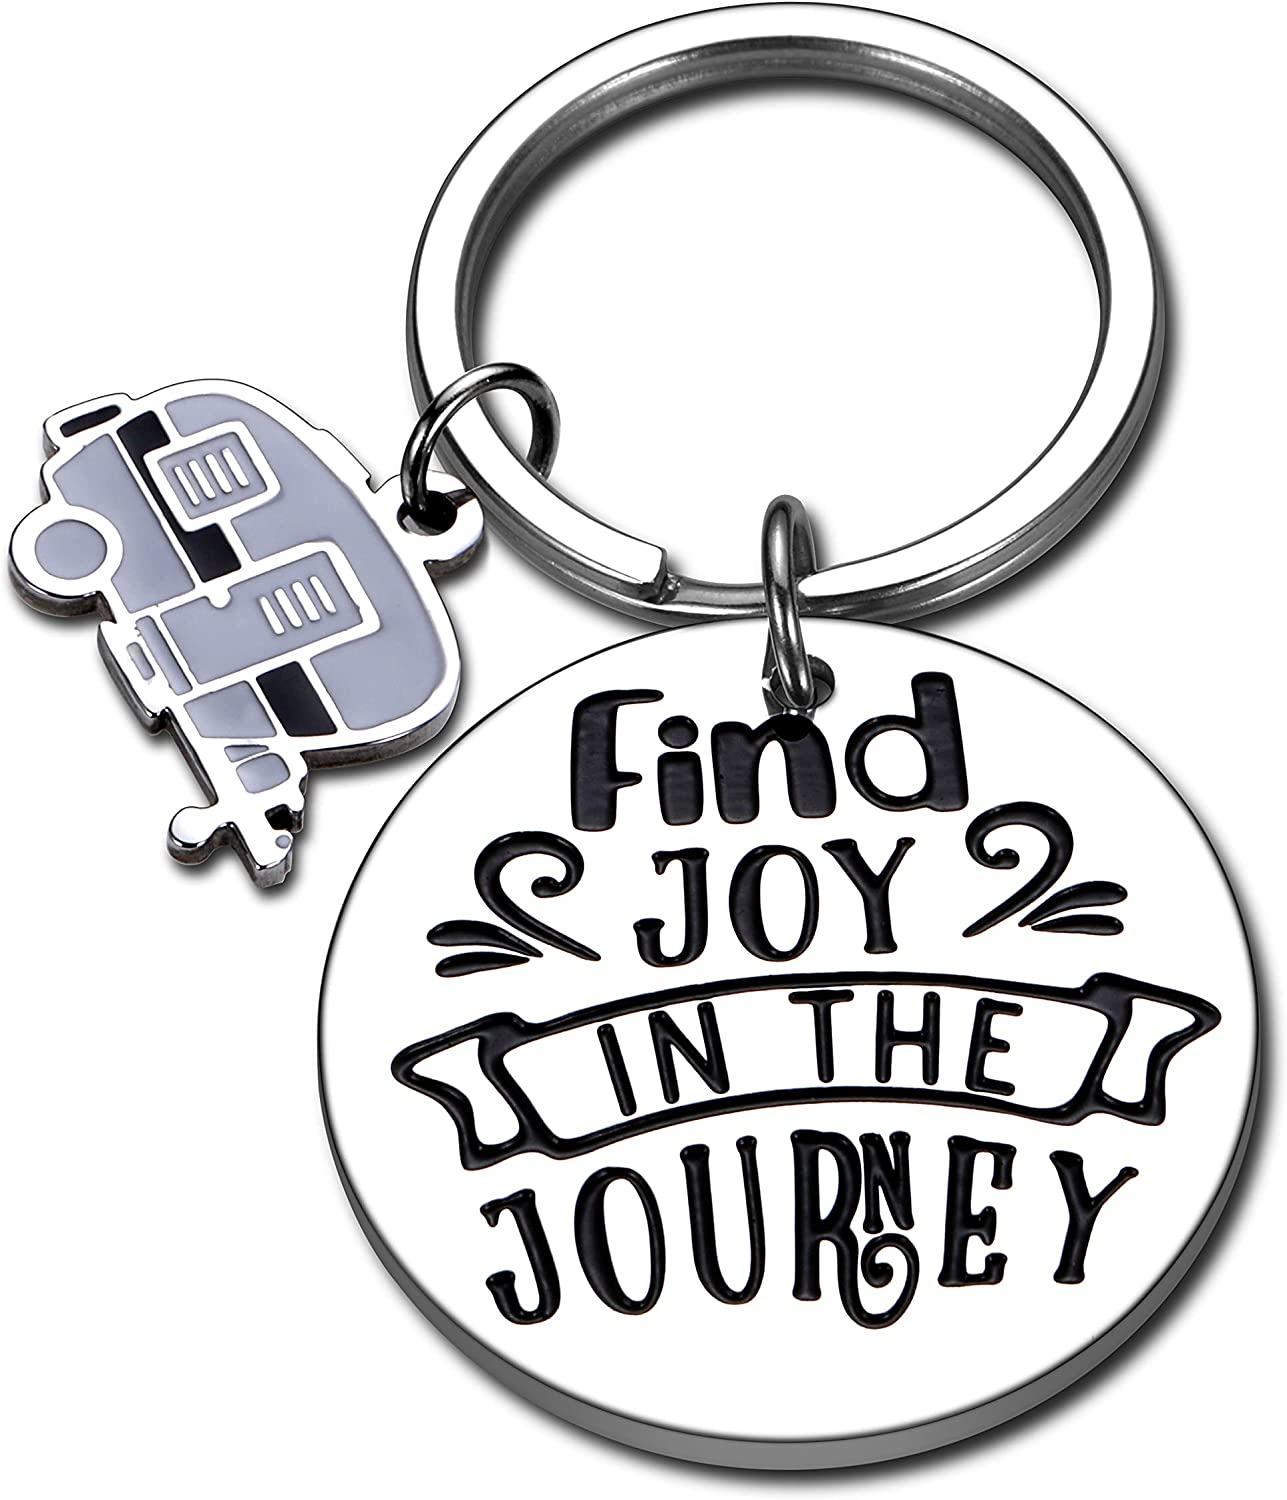 2021 Camper Decor for Travel Trailers Inside RV Camping Accessories for RV Owner Graduation Keychain Gifts Retirement Gifts for Women Men Coworker Her Funny Happy Camper Motorhome Decorations